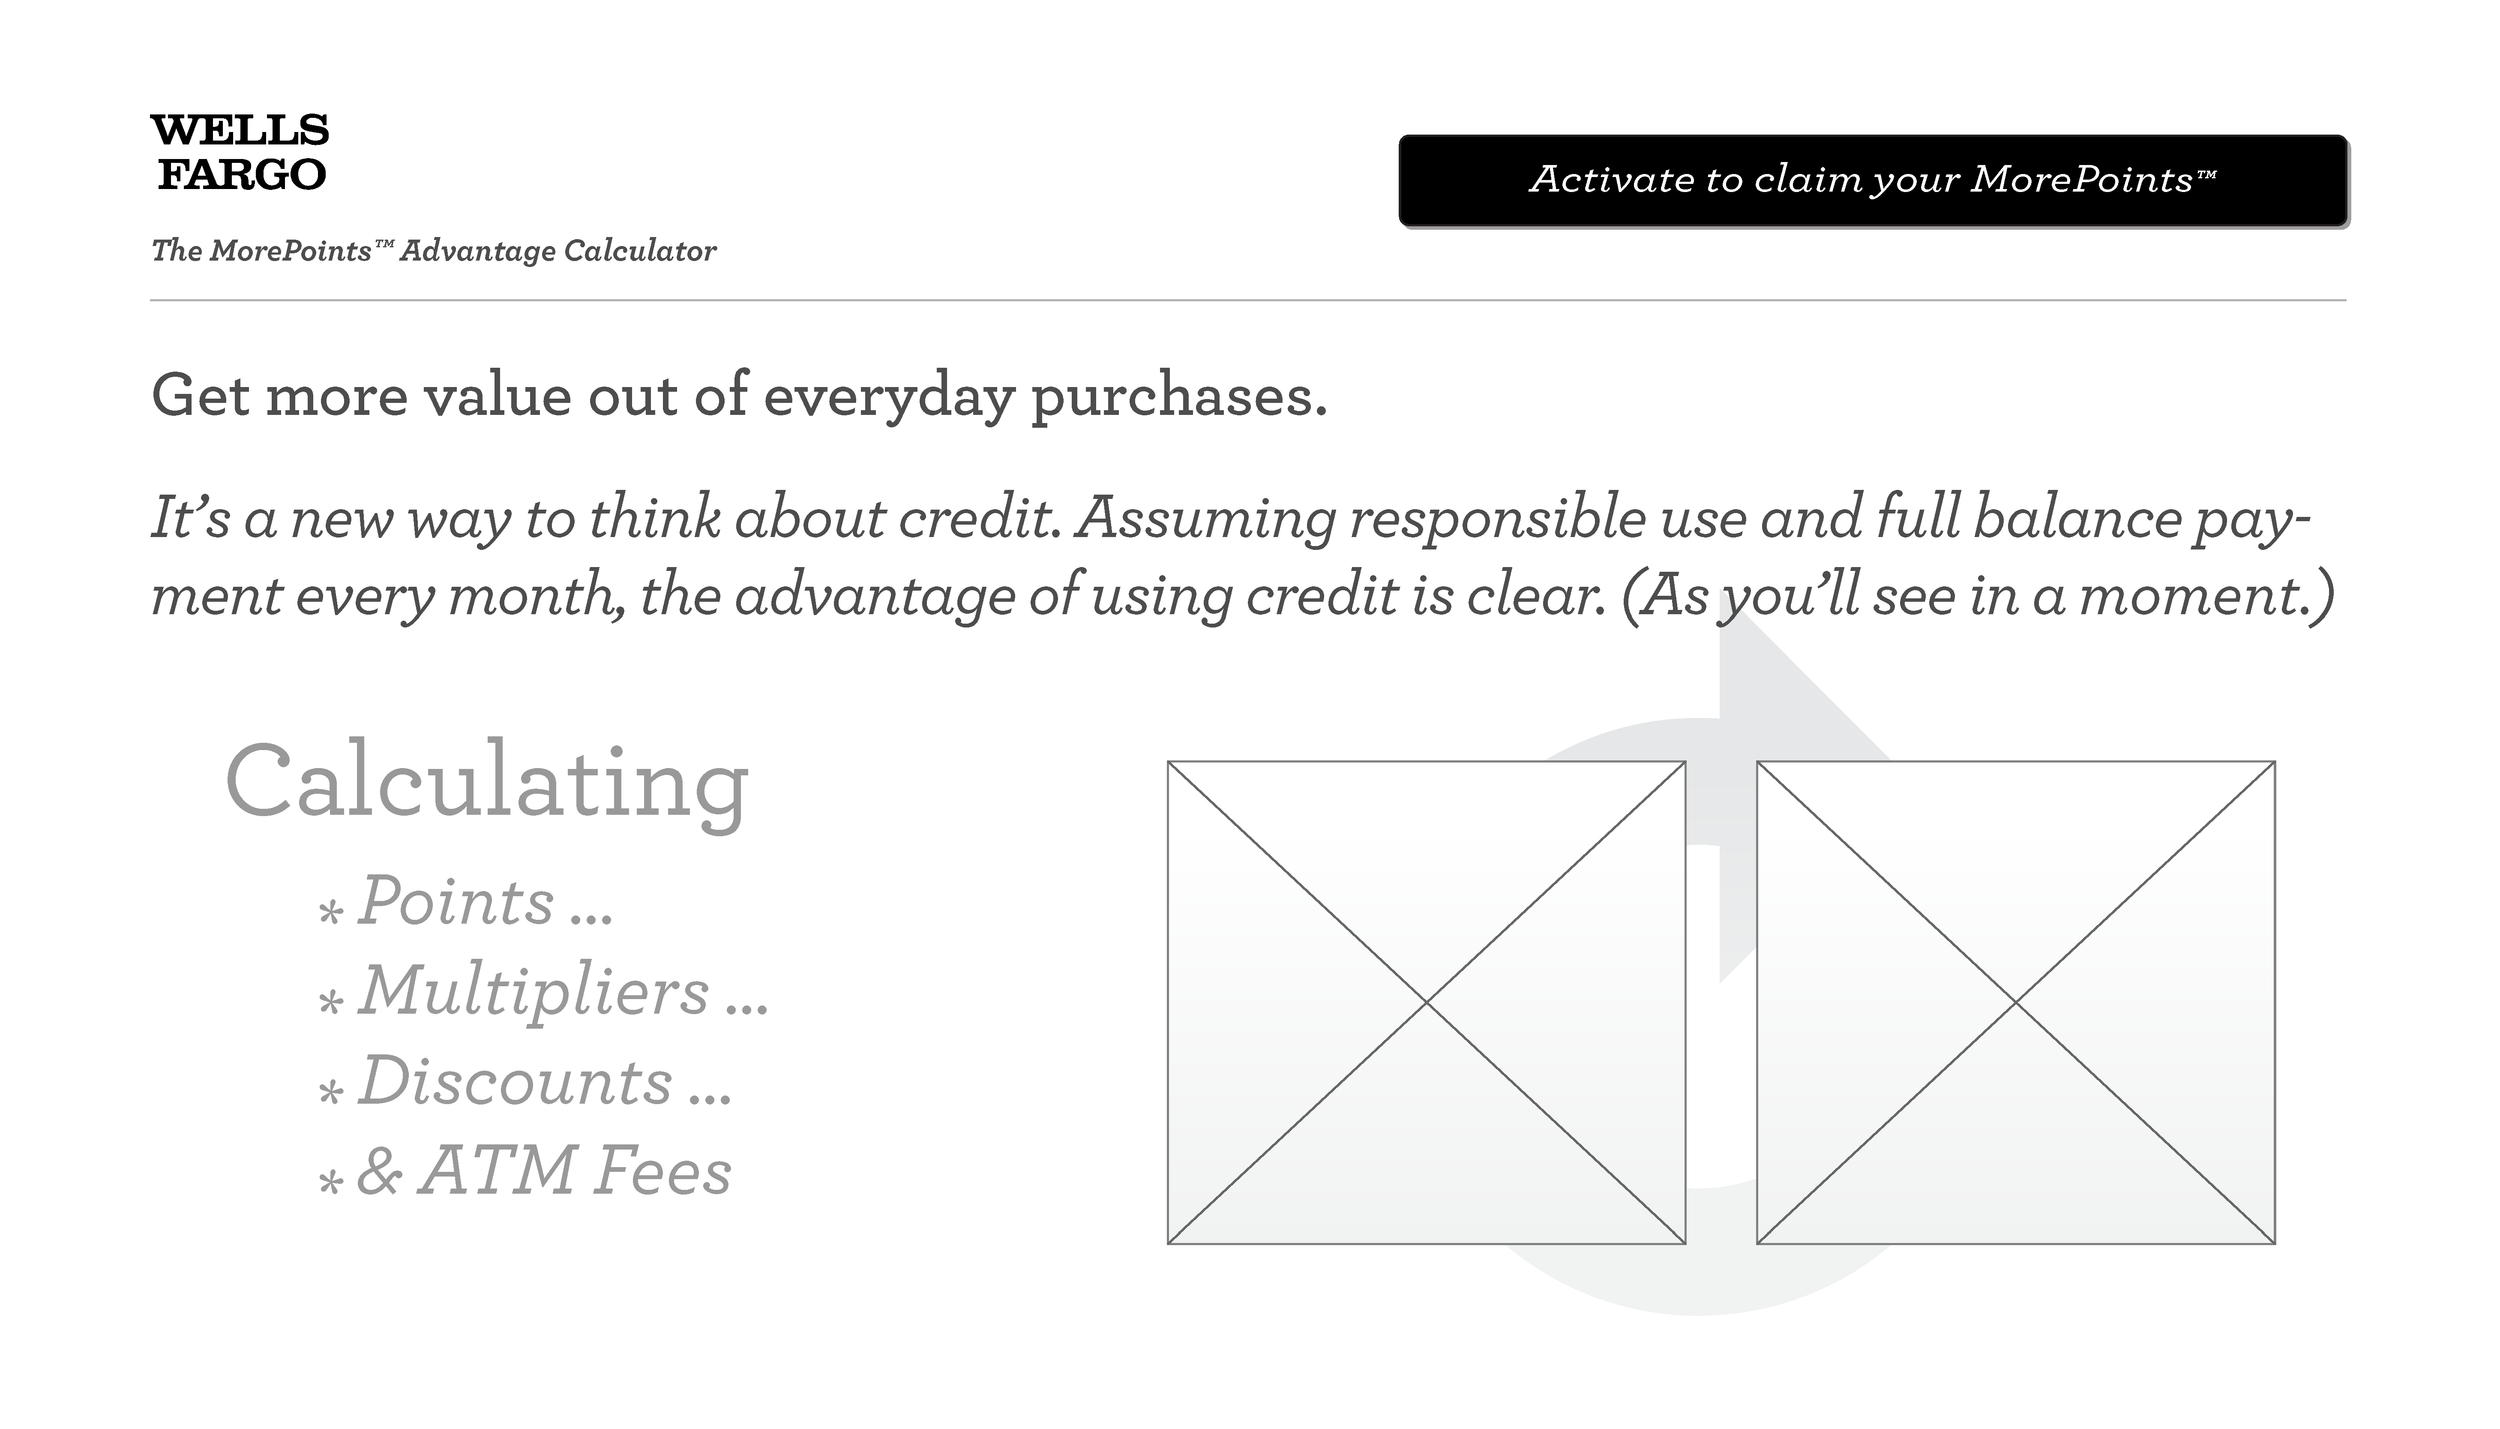 01 Wells Fargo_Page_3.png